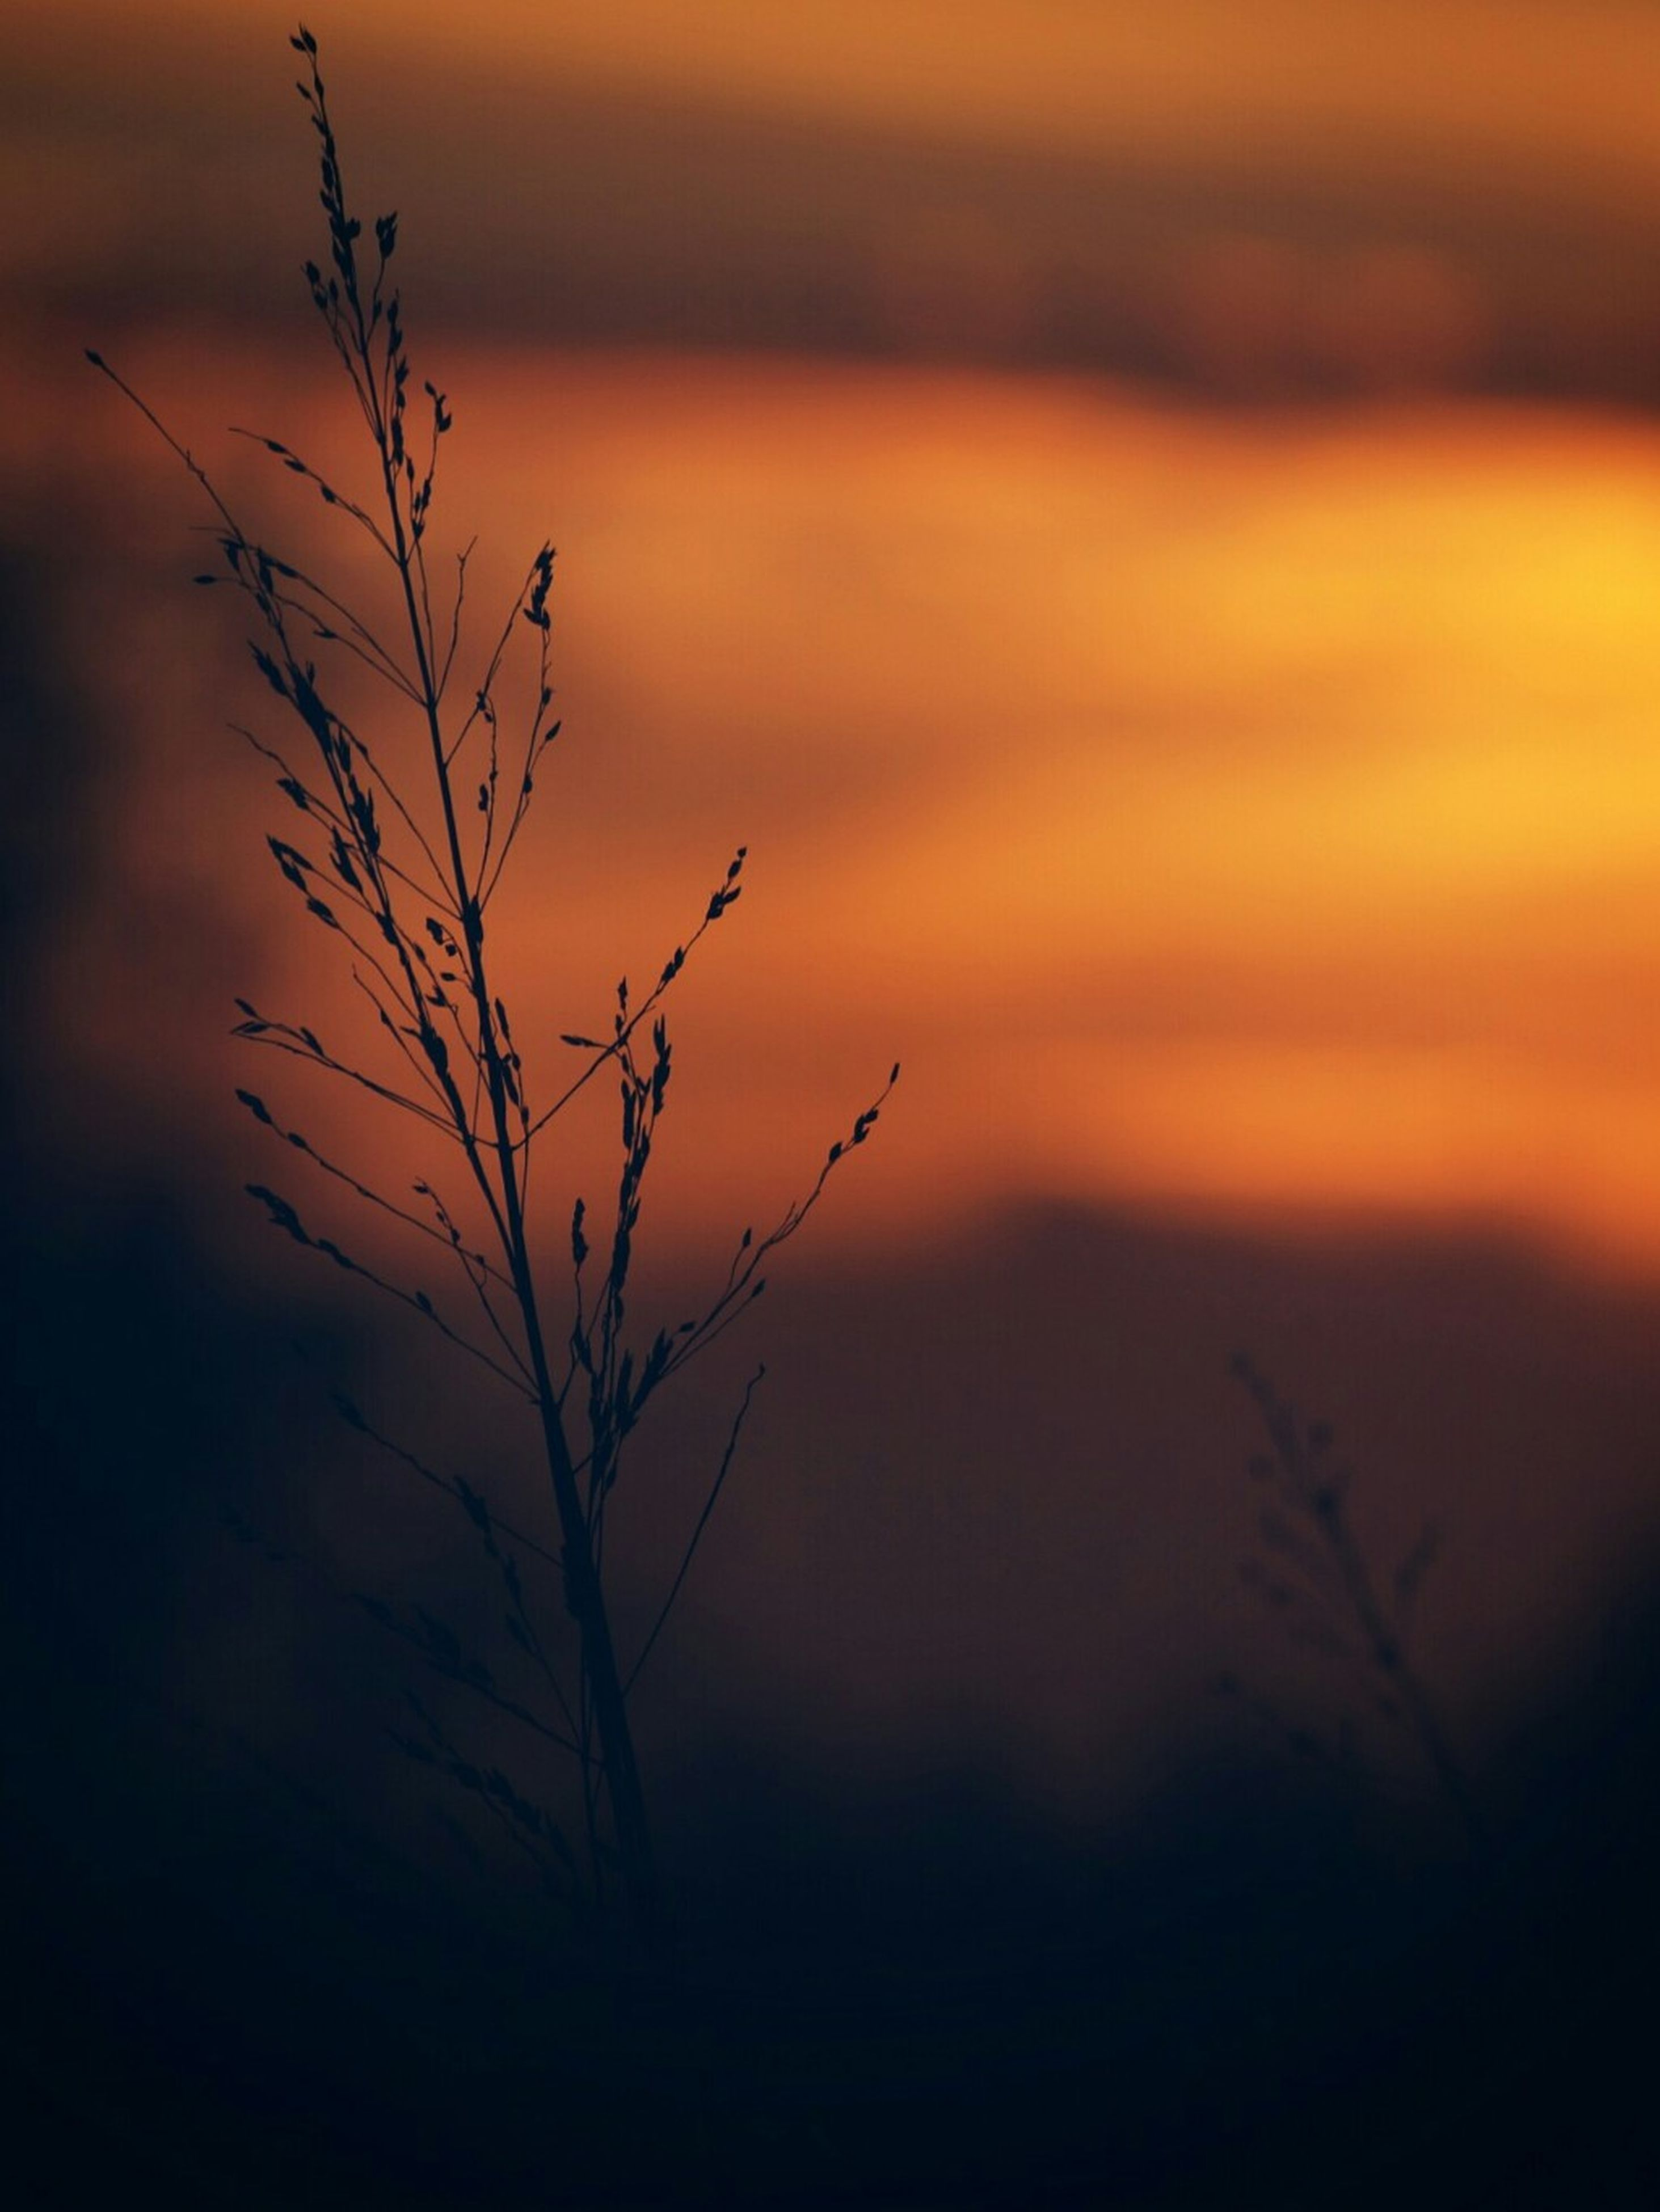 sunset, scenics, silhouette, tranquility, plant, beauty in nature, tranquil scene, nature, growth, close-up, focus on foreground, idyllic, orange color, majestic, branch, non-urban scene, dead plant, uncultivated, fragility, sky, outdoors, dramatic sky, outline, remote, solitude, no people, cloud - sky